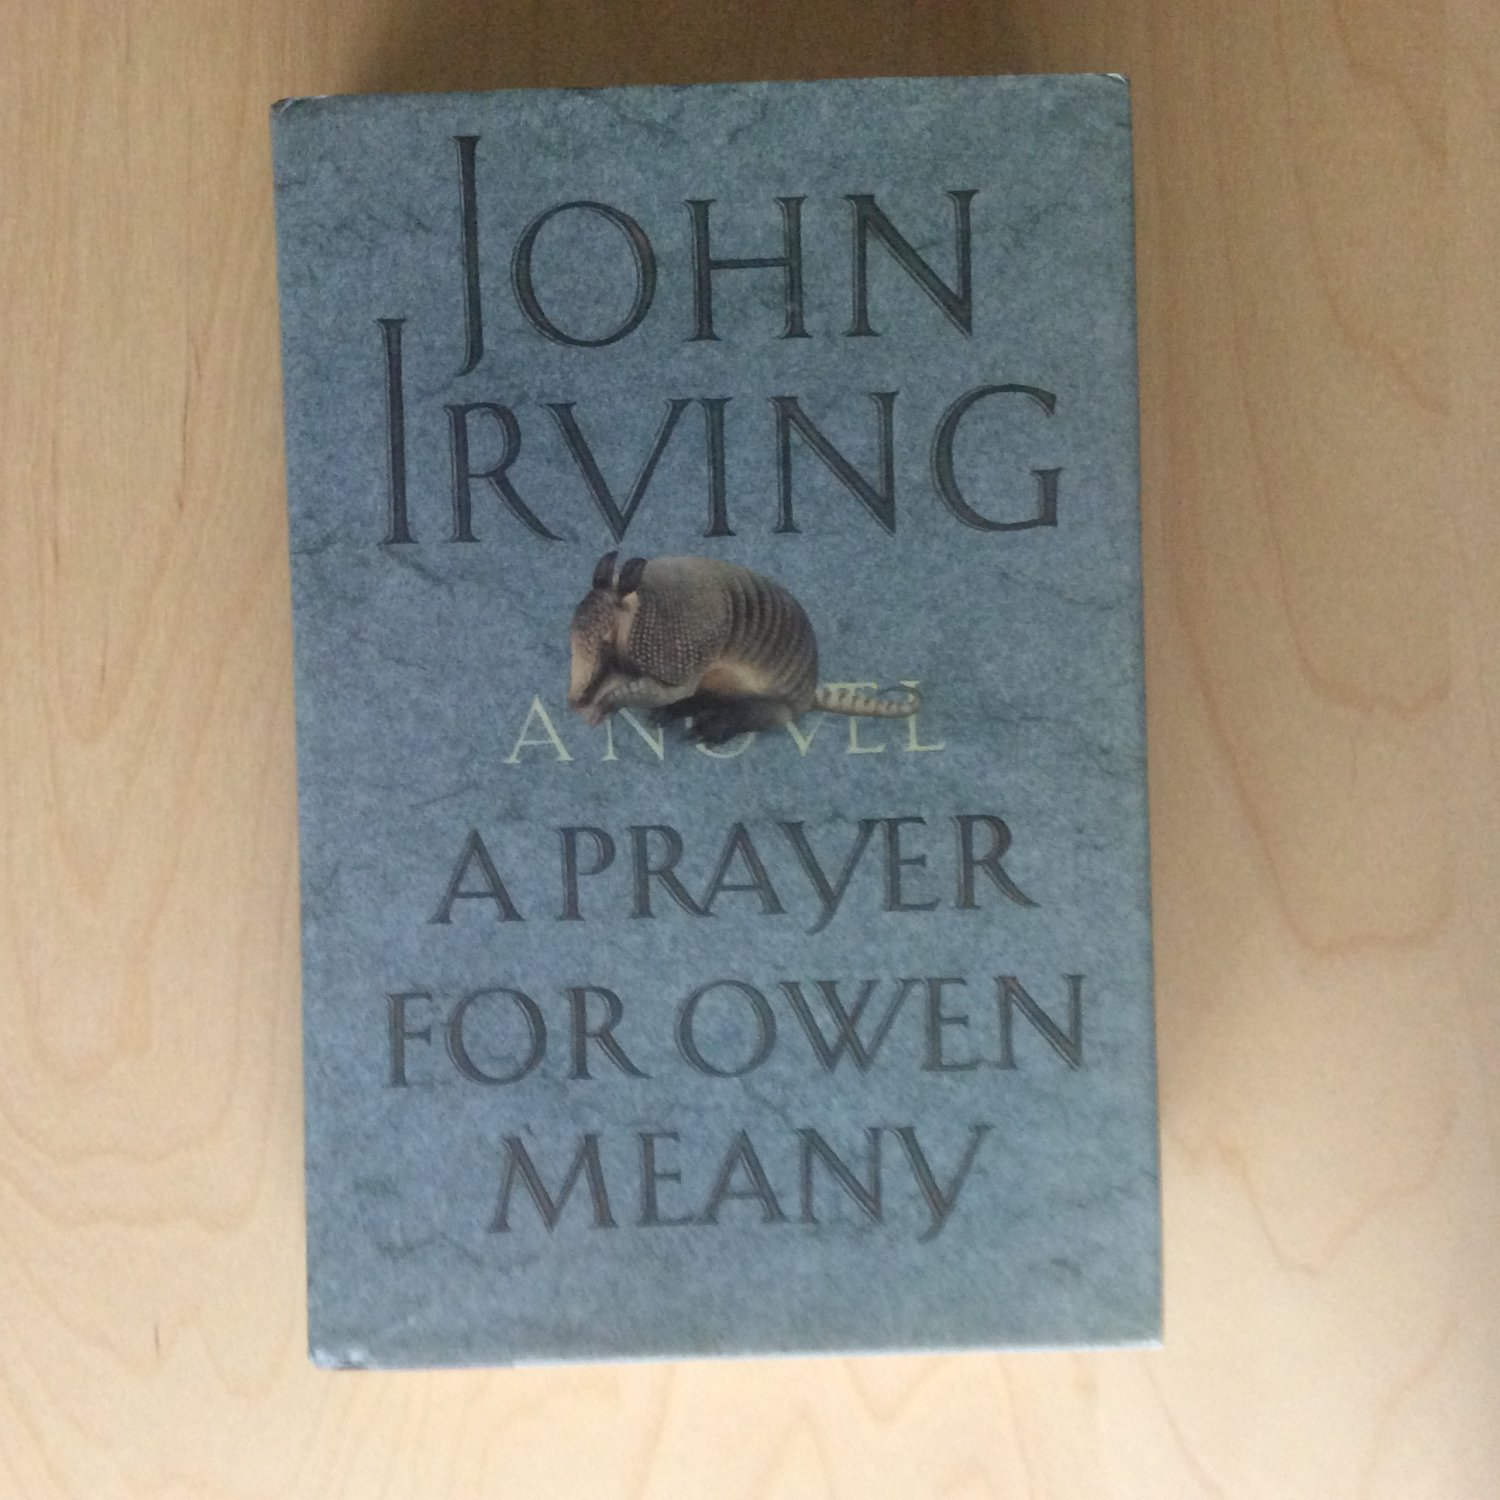 BOOK FIRST EDITION A Prayer for Owen Meany by John Irving 1989 Hardcover